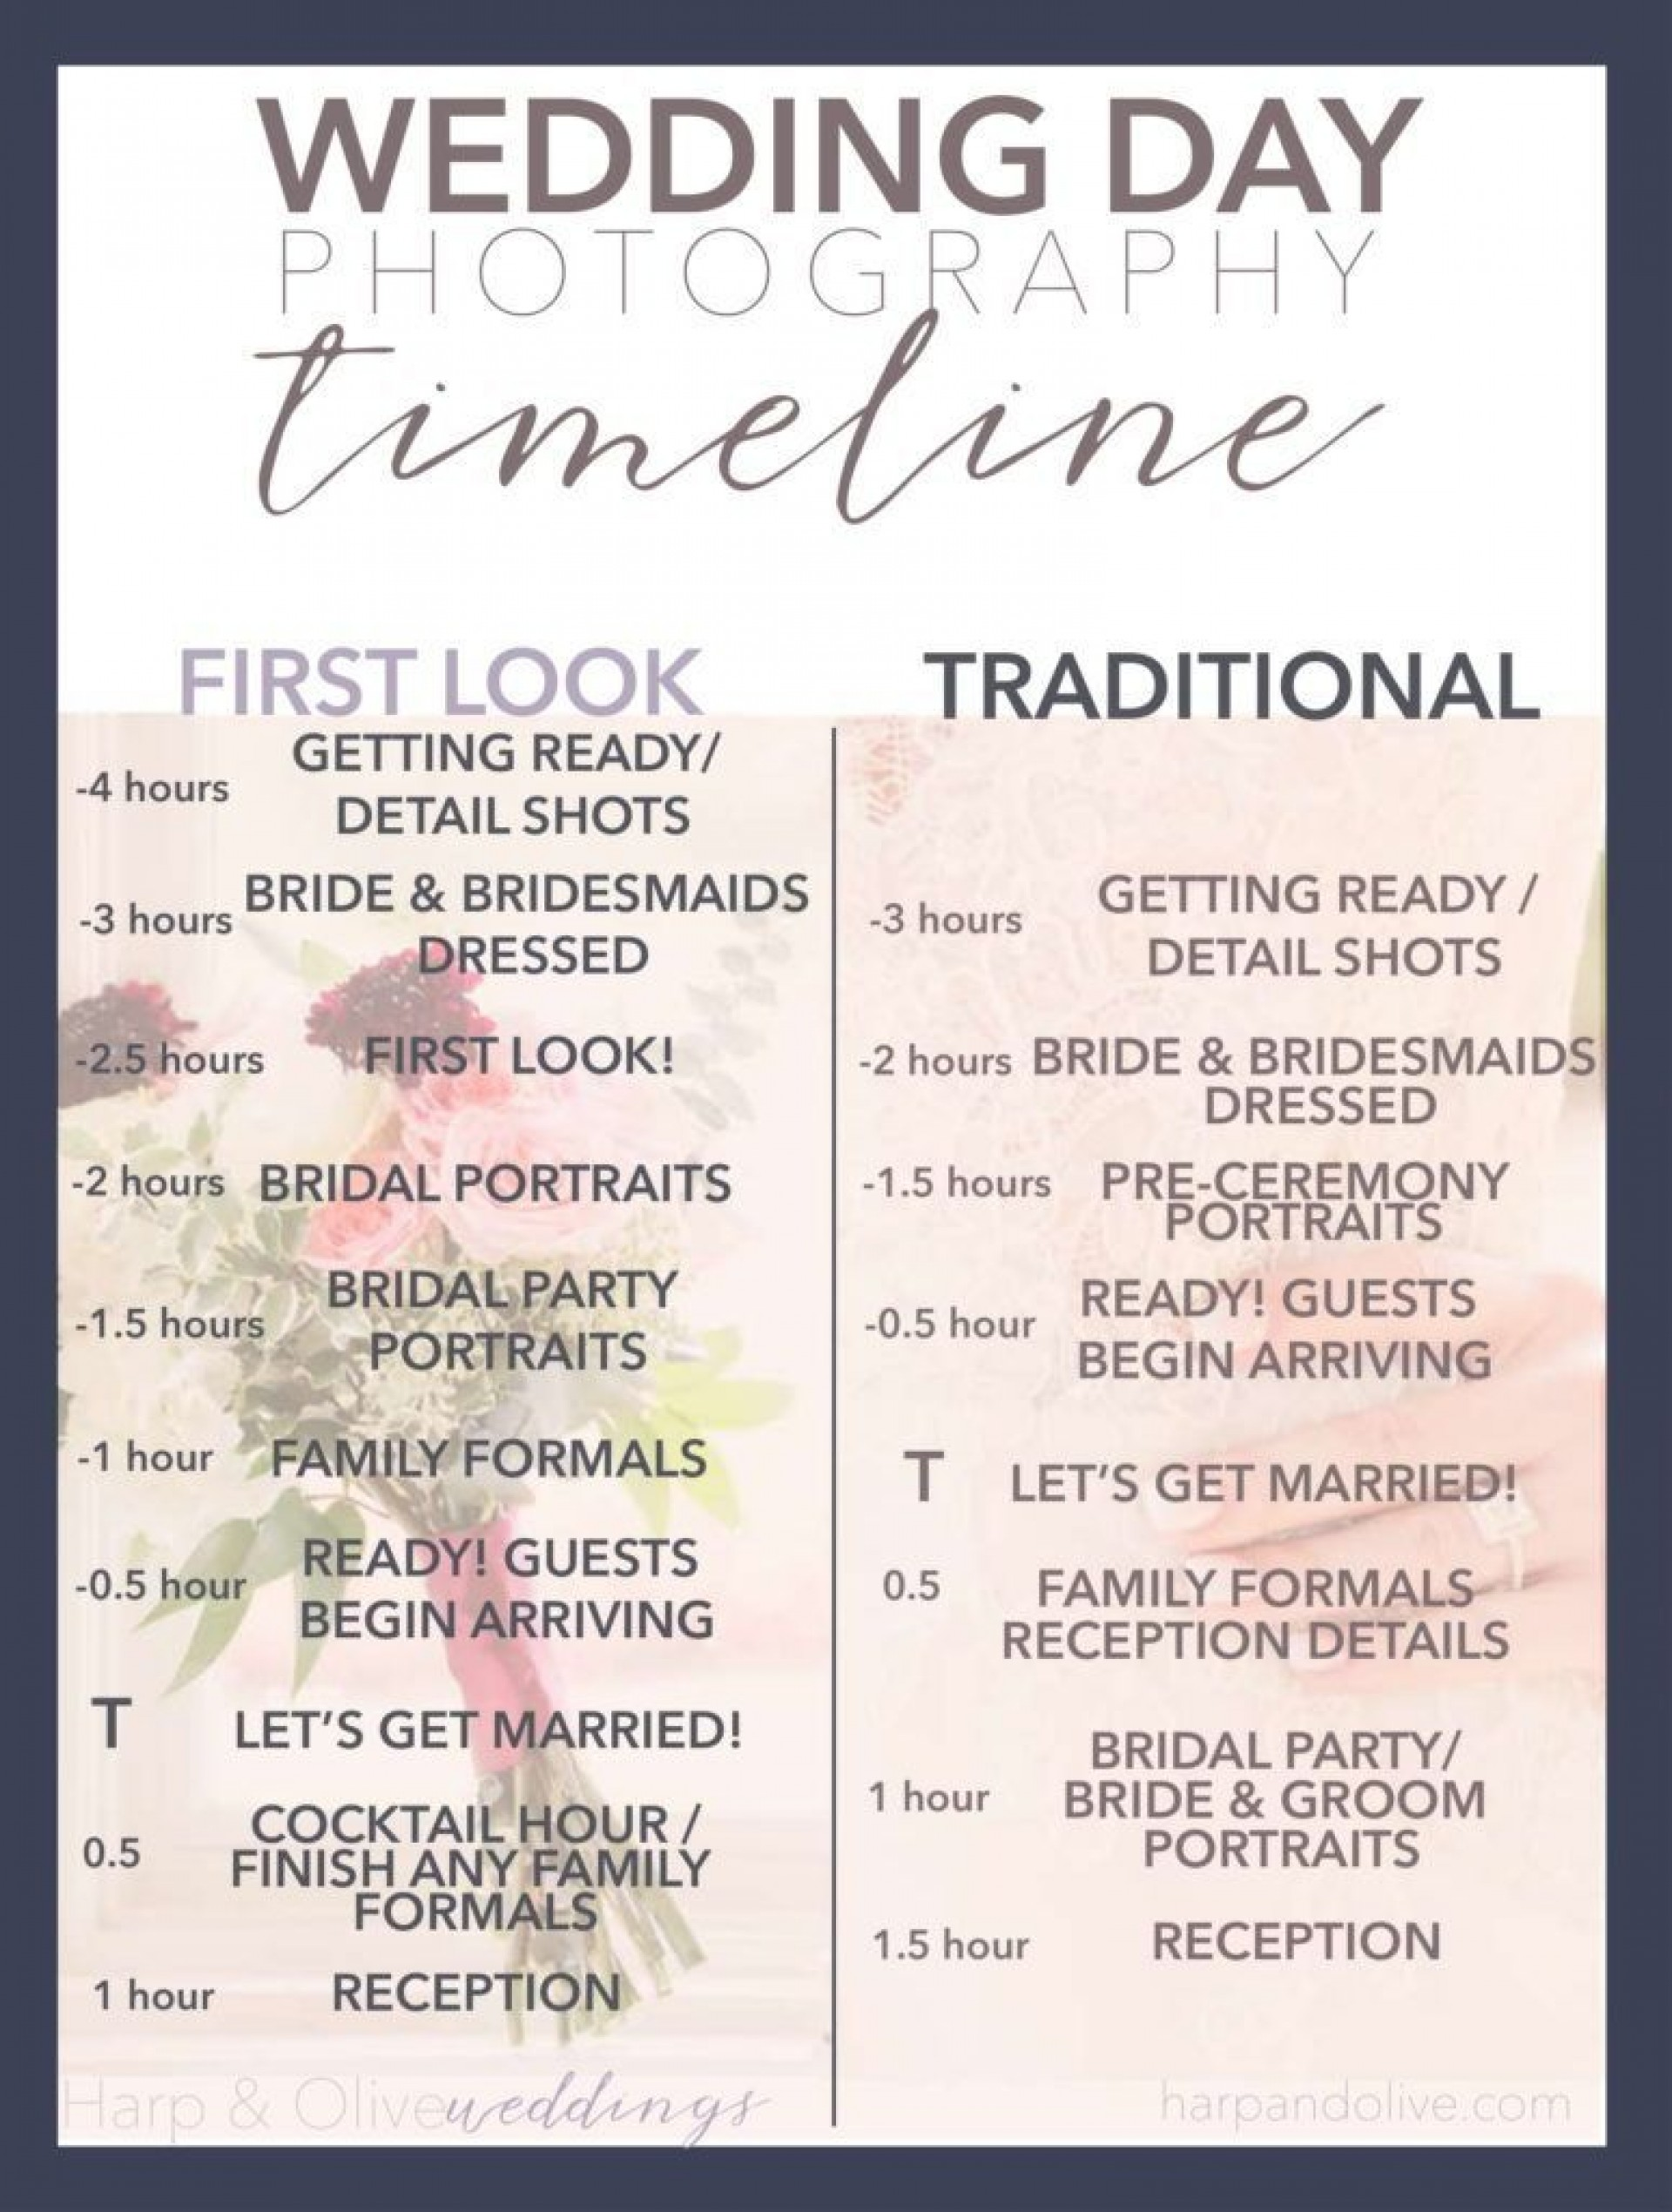 008 Singular Wedding Day Itinerary Template Sample  Reception Dj Indian Timeline For Bridal Party1920